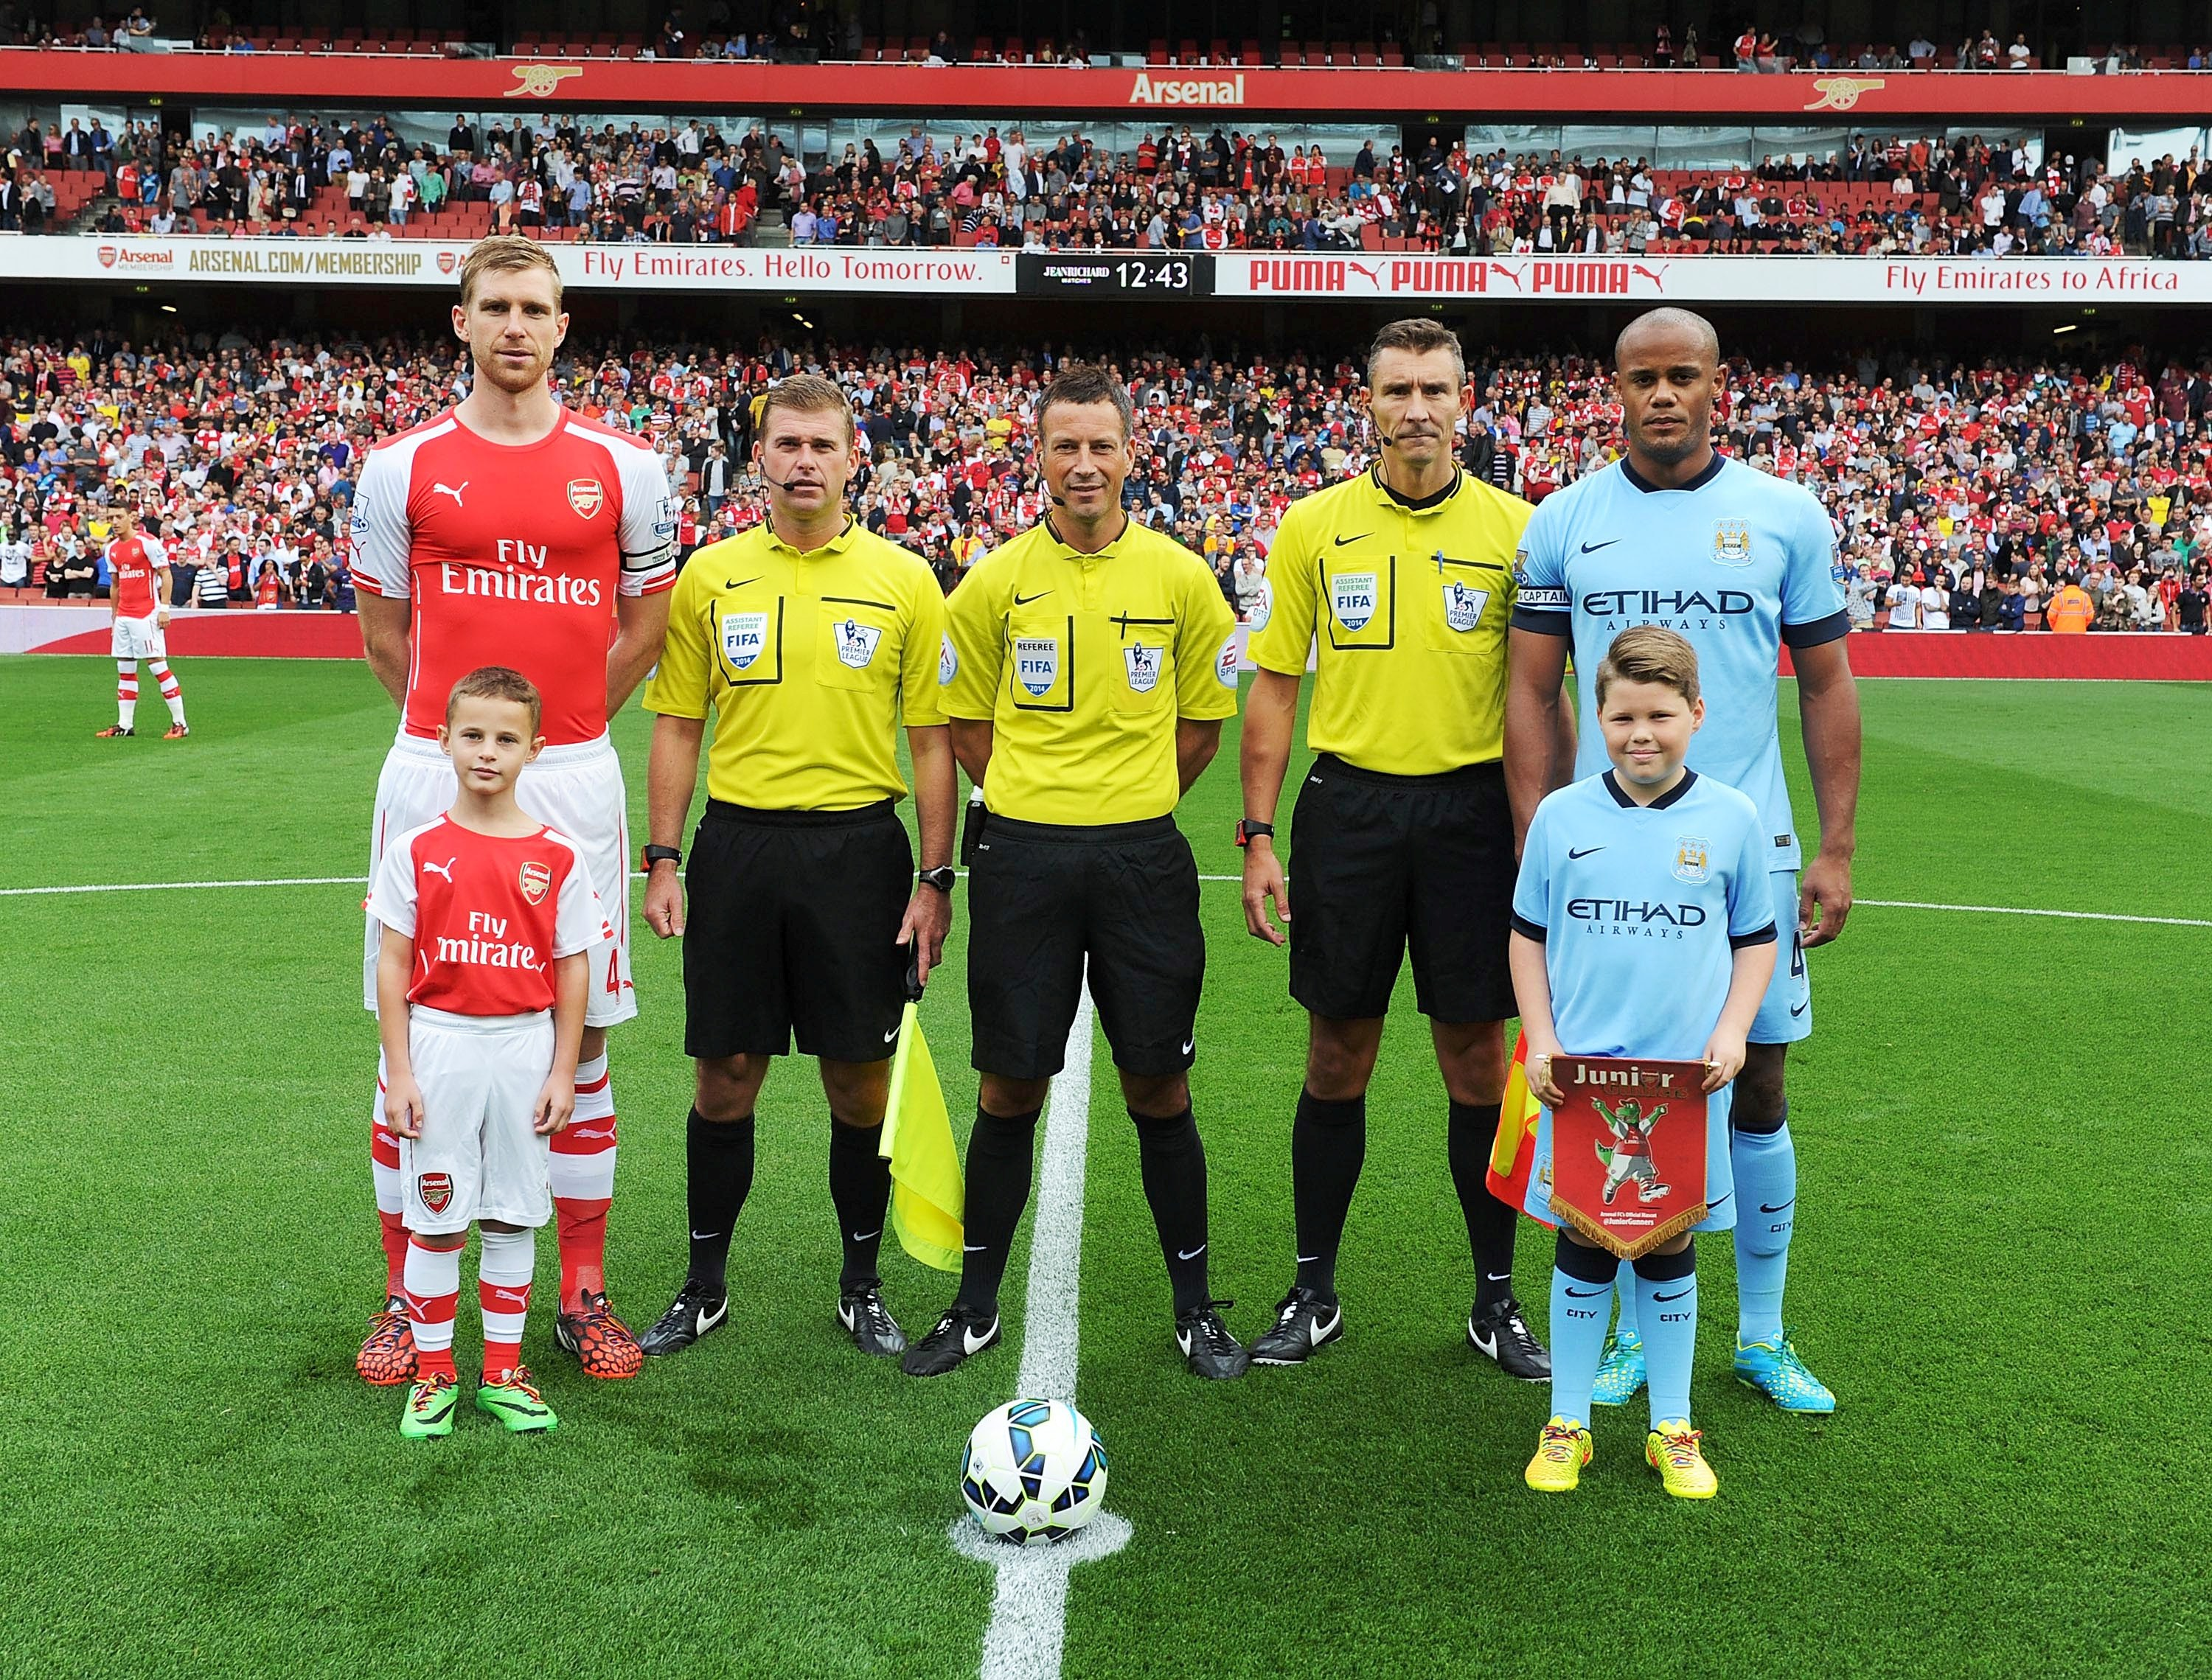 Show time - Stefan poses for the officlal pre-kick off photo with Vinny, Alfie, Arsenal skipper, Per Mertesacker and match day officials (who shall remain nameless otherwise I might swear and this isn't your usual Read But Never Red!)